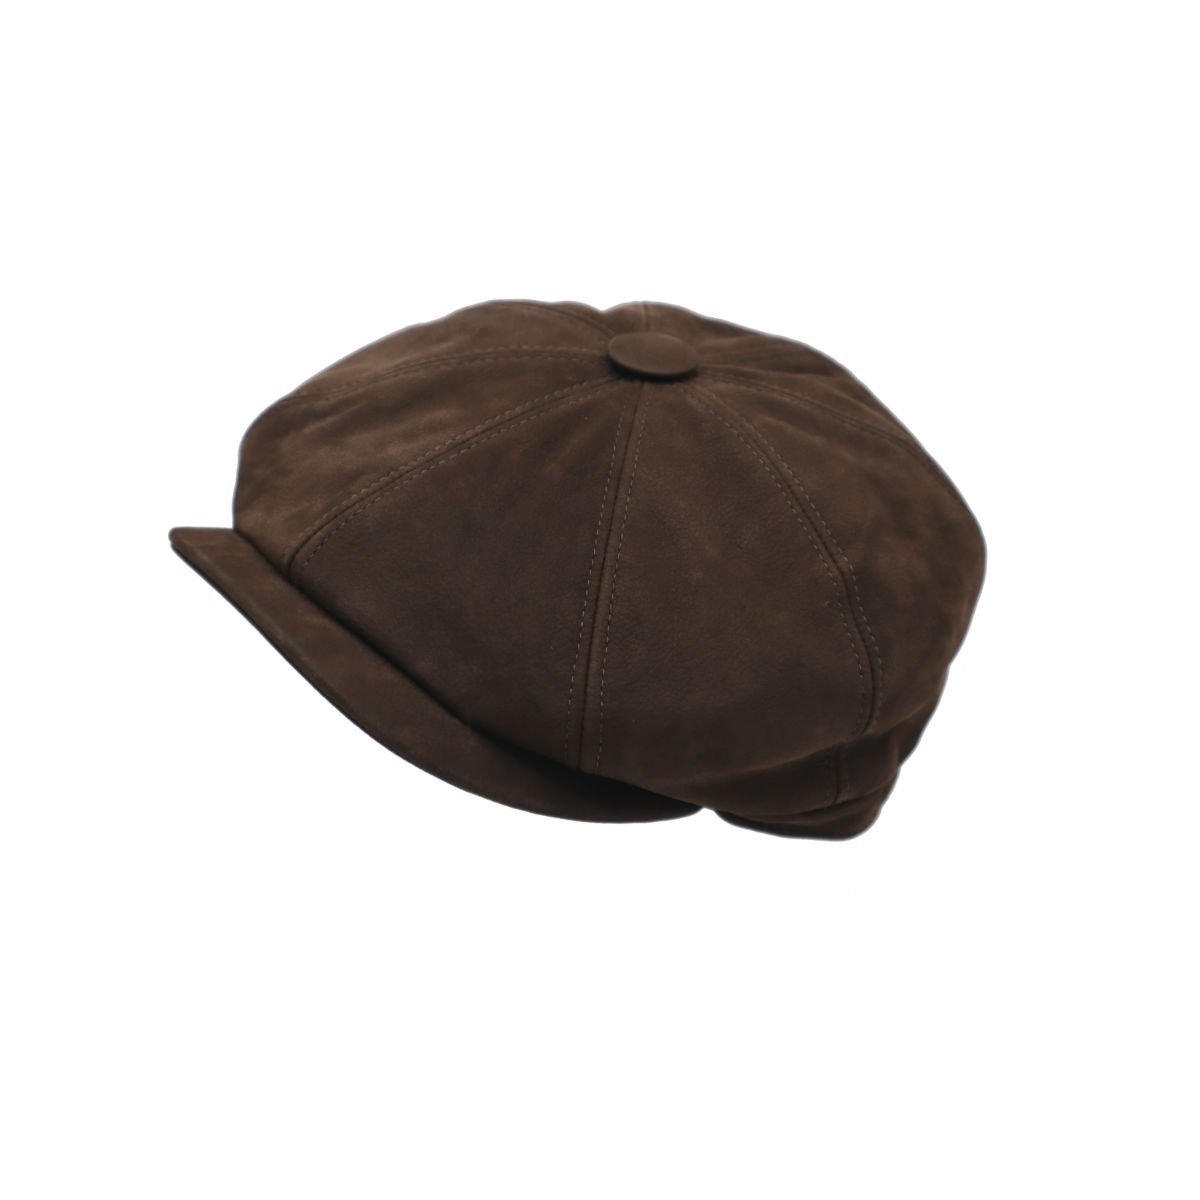 retro pet newspaperboy cap in leder van city sport side shot